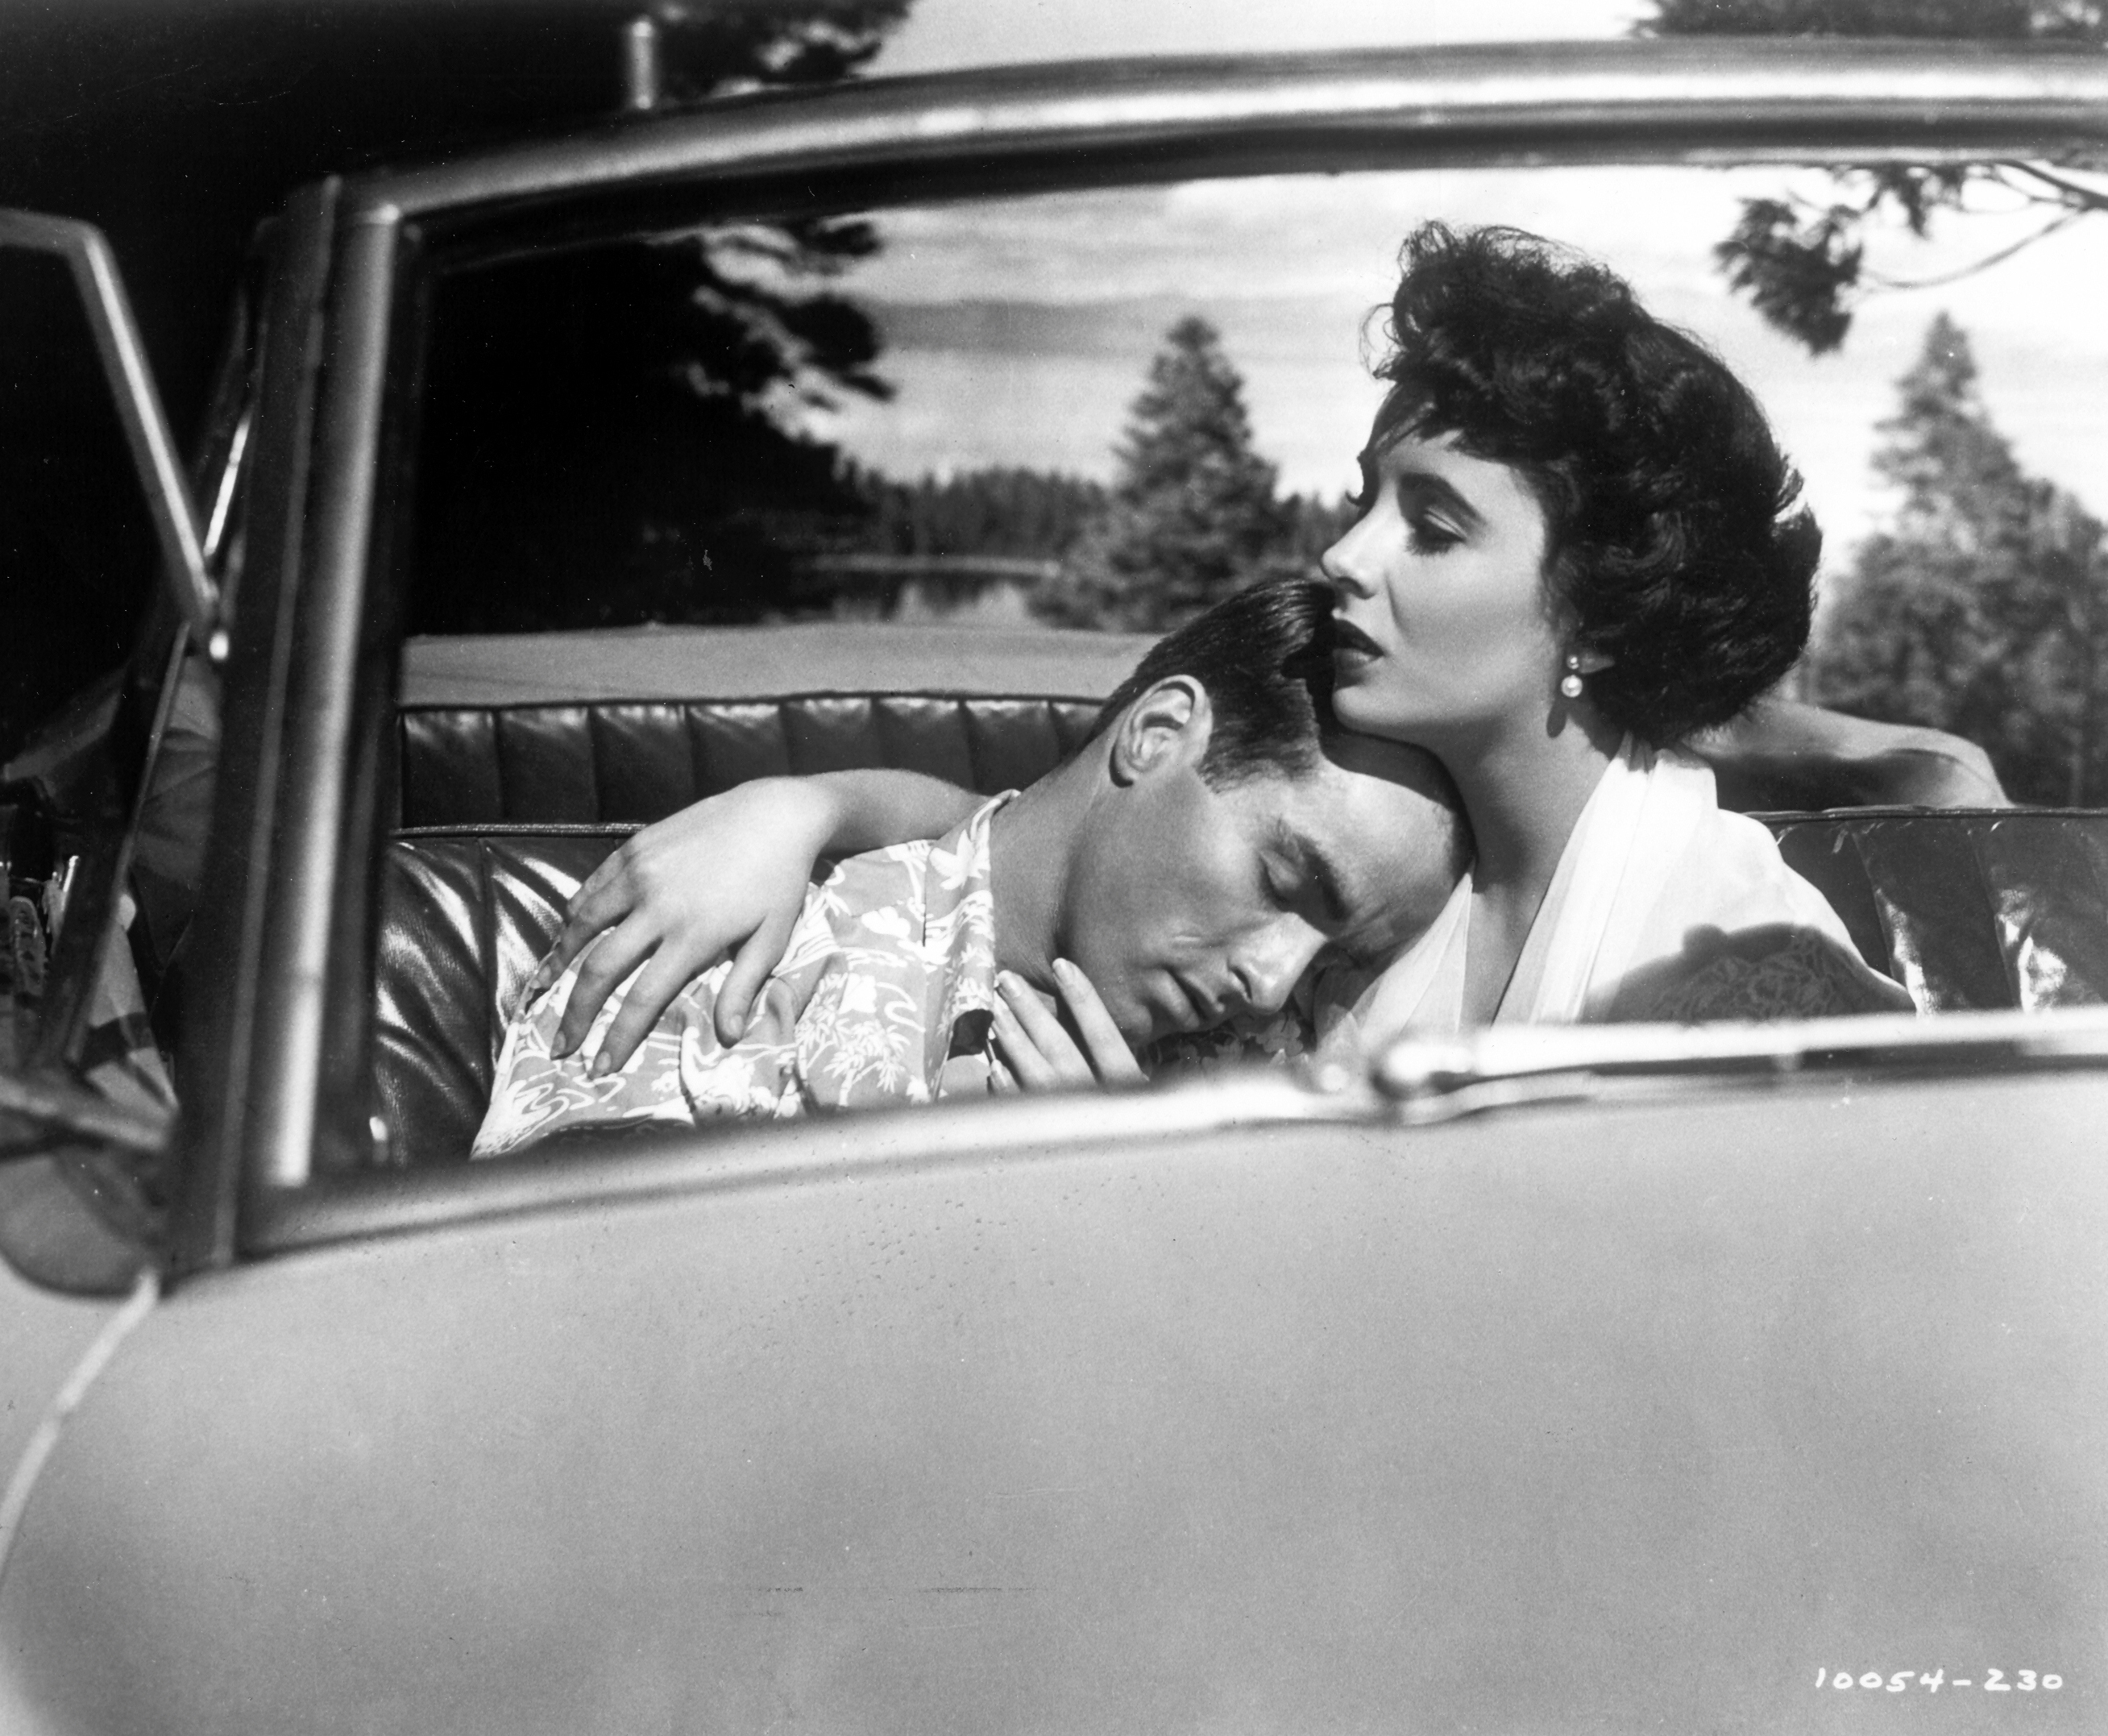 Montgomery Clift and Elizabeth Taylor in A PLACE IN THE SUN